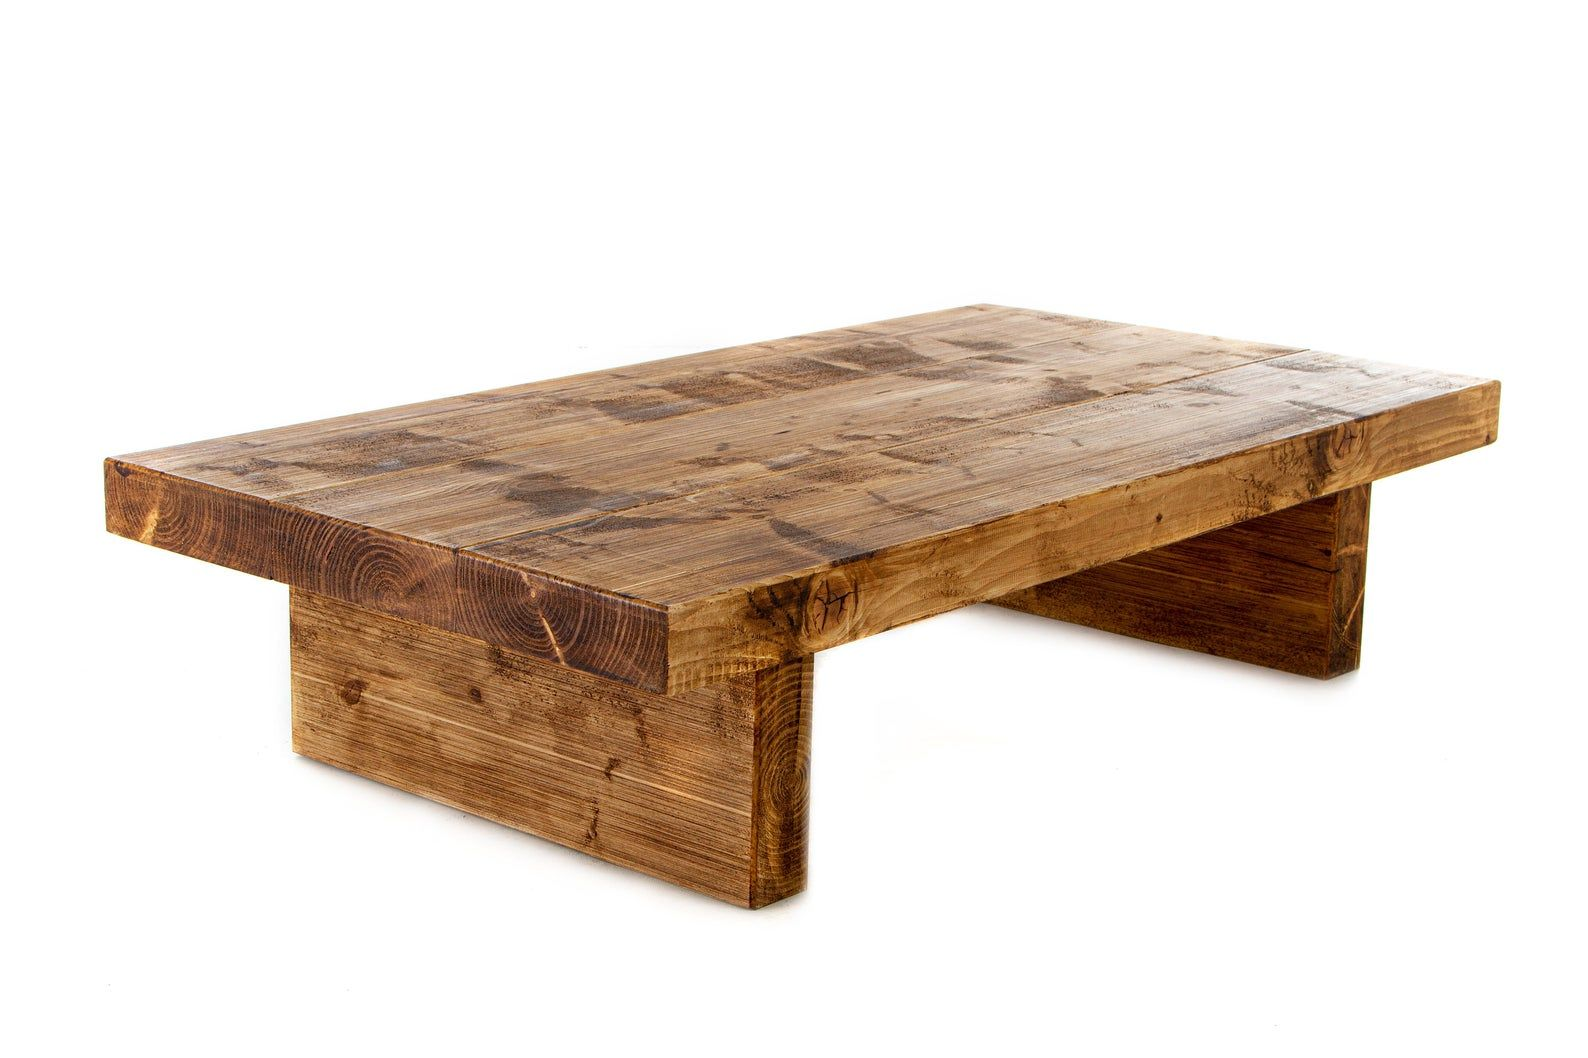 Chunky Rustic Coffee Table Handcrafted From 3 Inch Thick Etsy In 2021 Rustic Coffee Tables Sofa Handmade Reclaimed Wood Coffee Table [ 1058 x 1588 Pixel ]